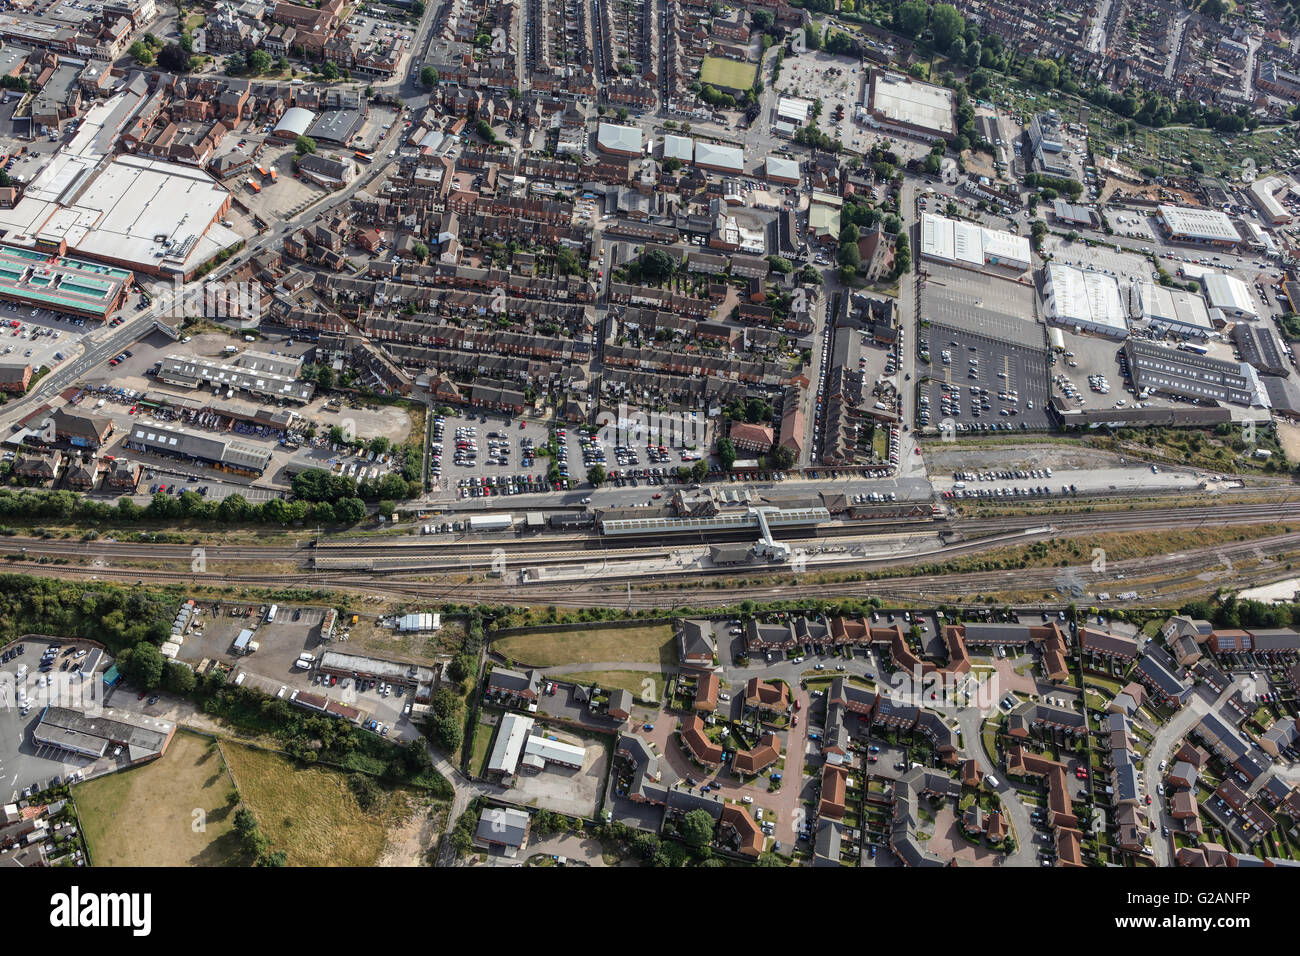 An aerial view of the Railway Station and immediate surroundings in Grantham, Lincolnshire - Stock Image